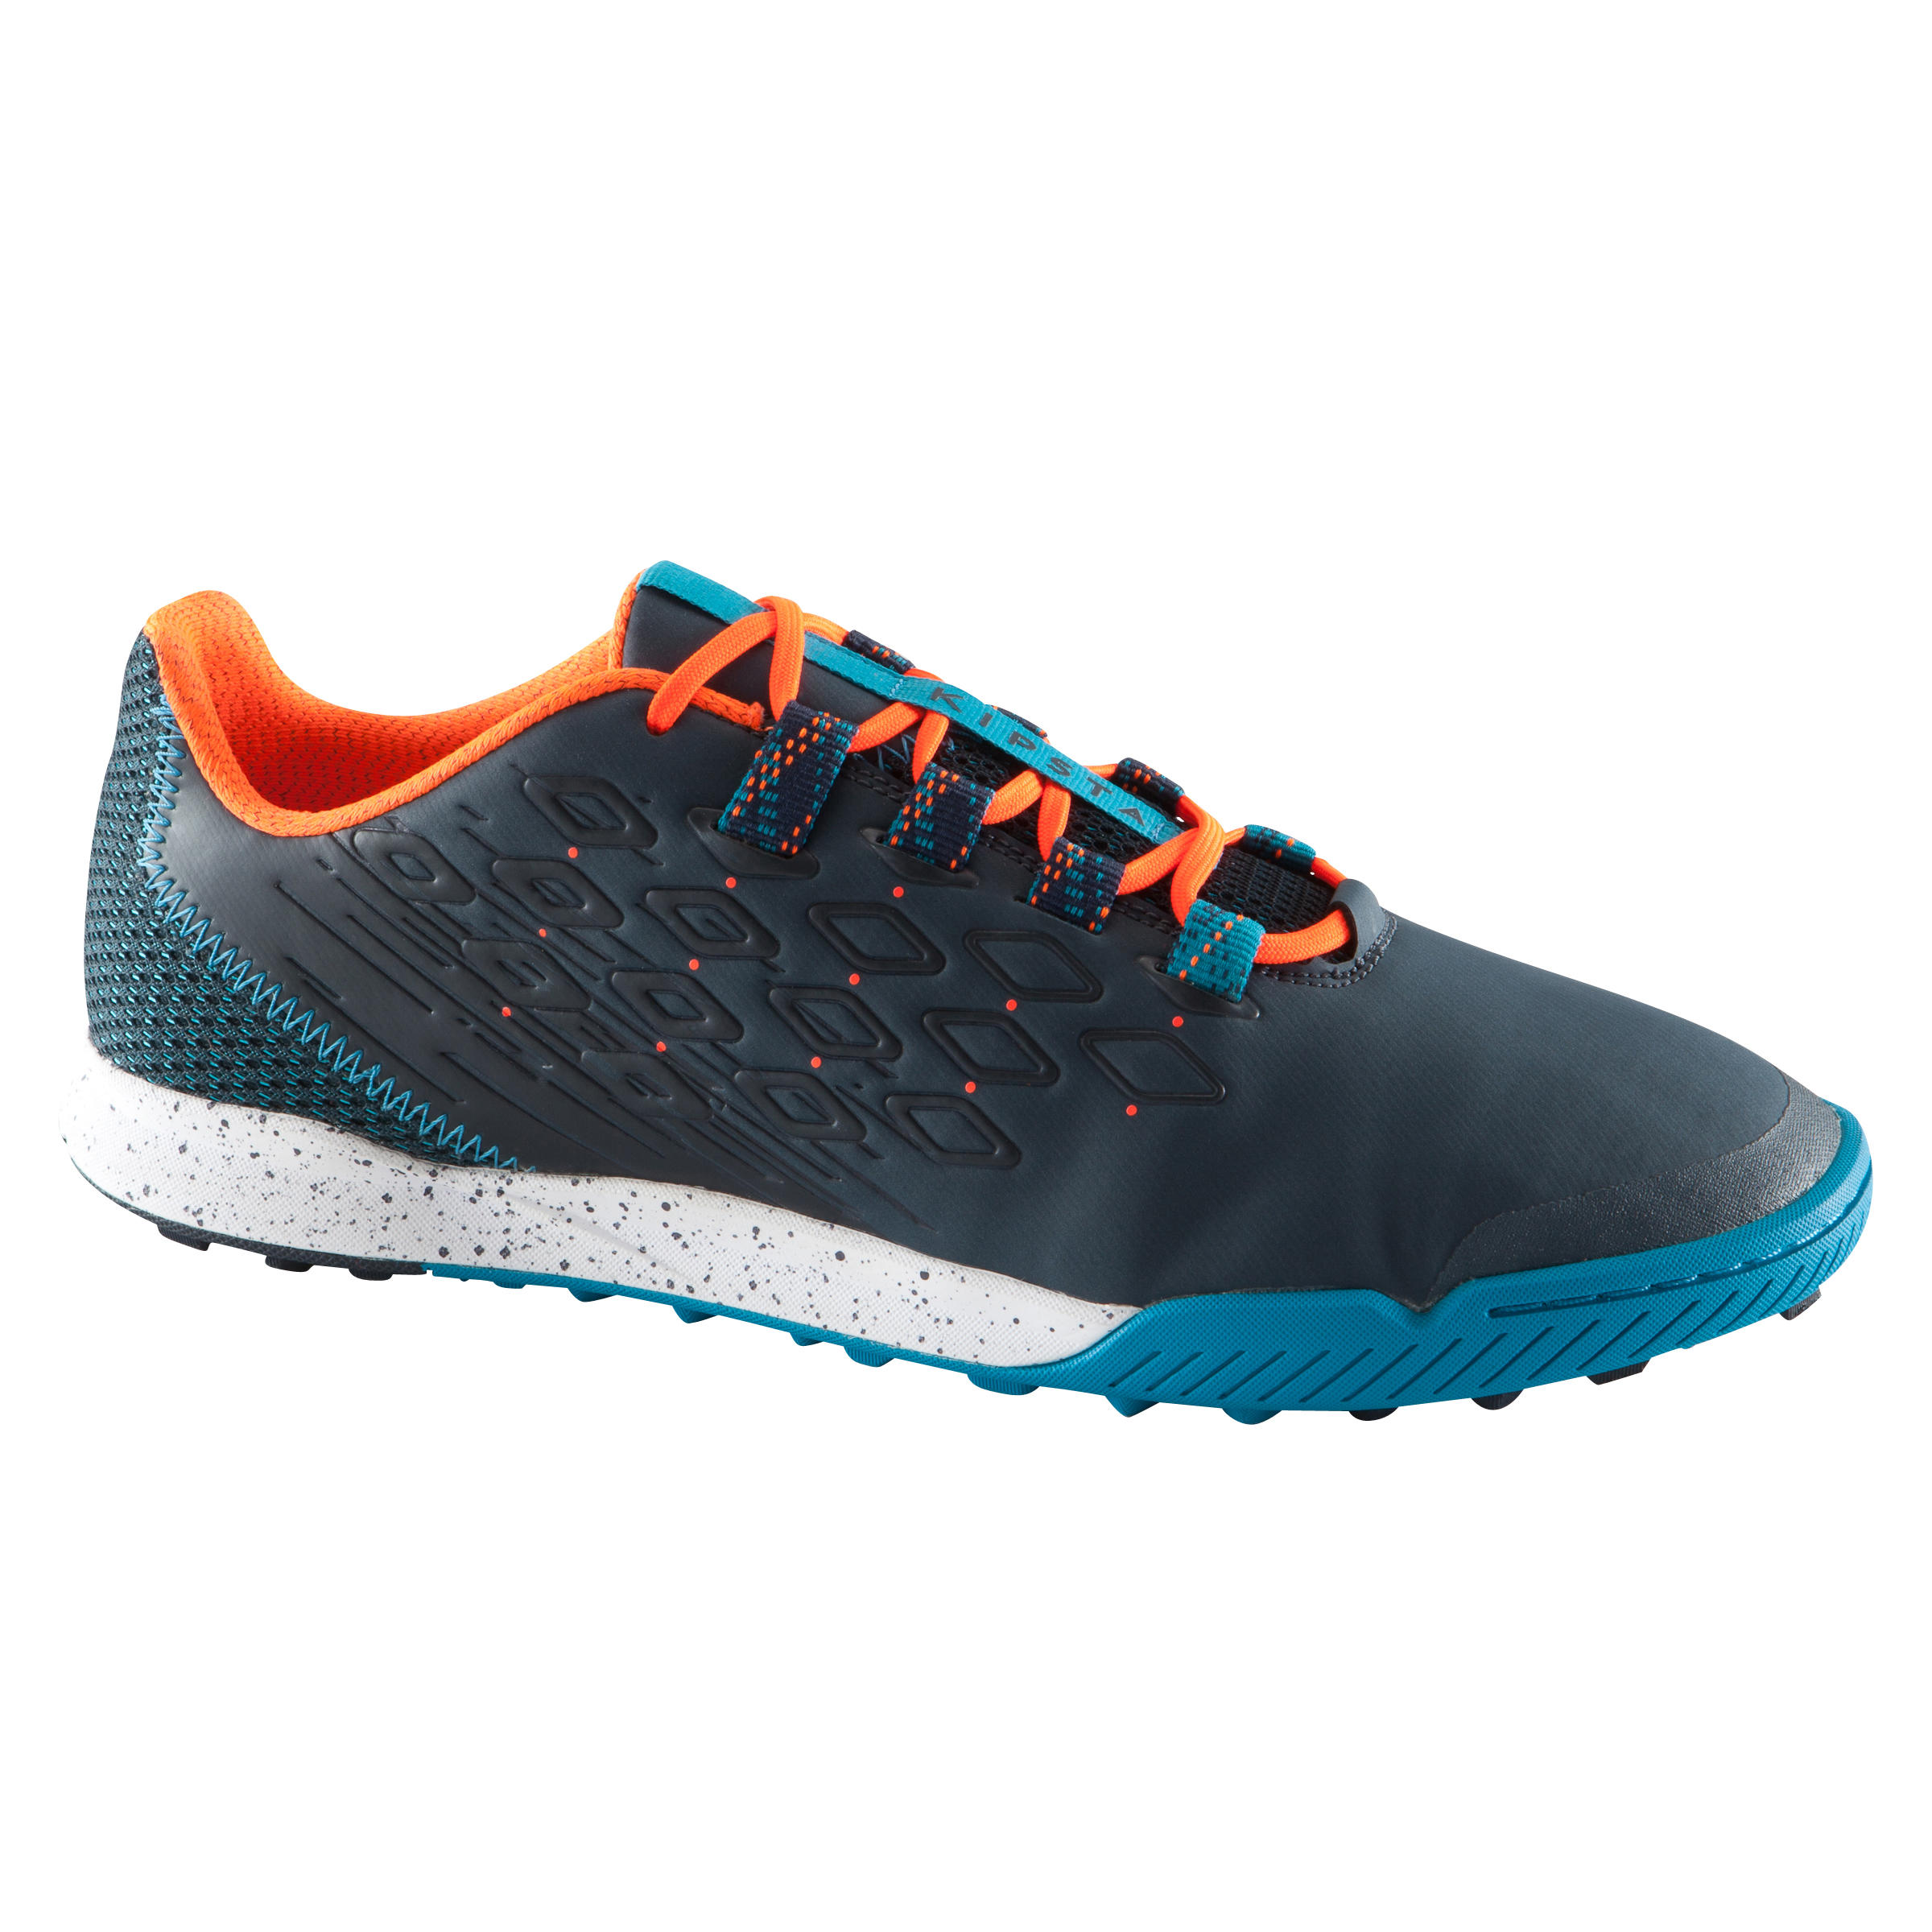 Sifter 900 HG Adult Hard Pitches Soccer Boots - Blue/Orange